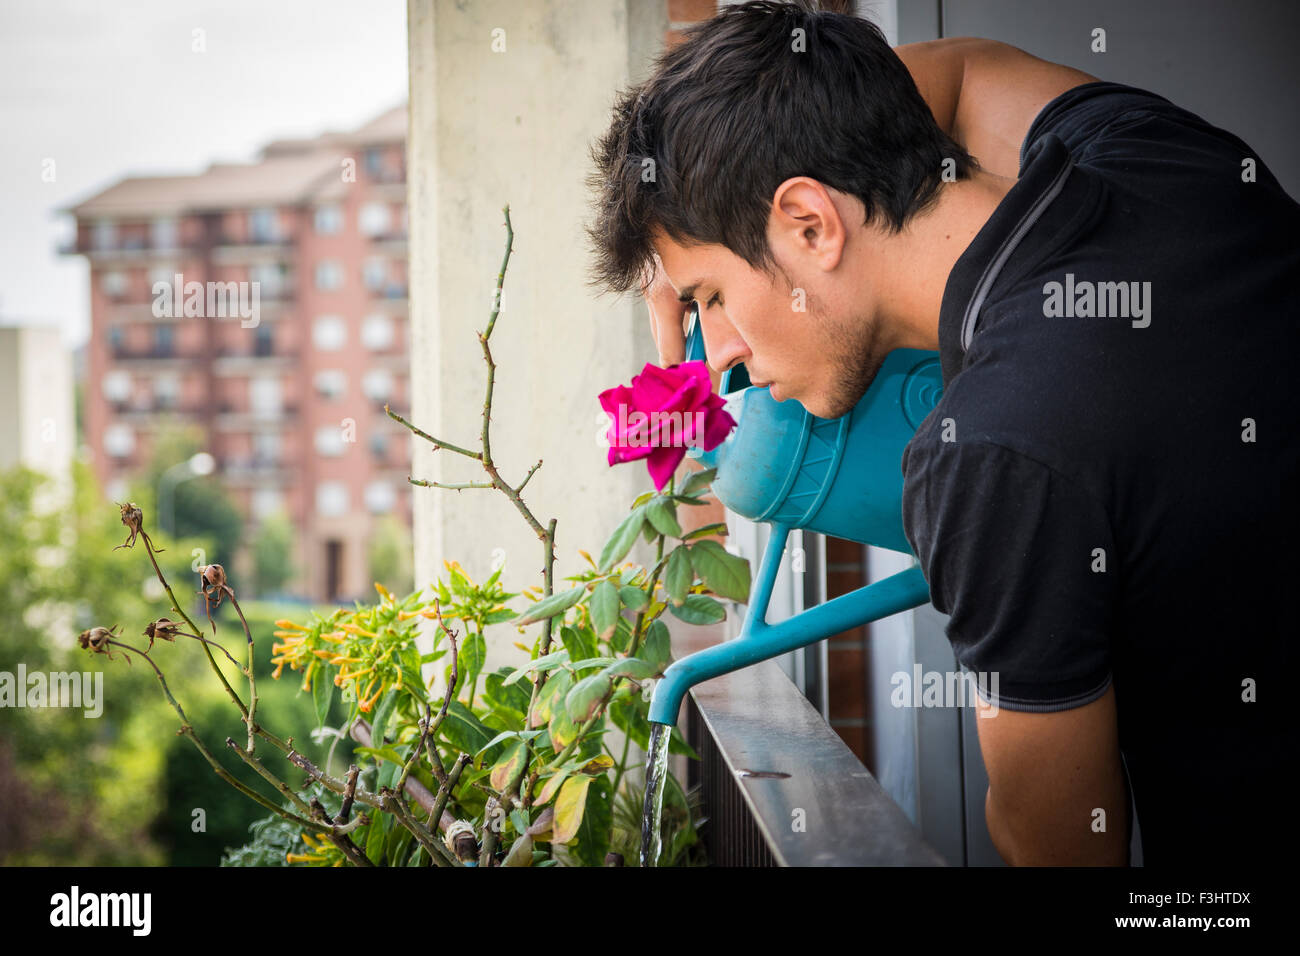 Attractive Young Man on Apartment Balcony Watering Plants in Box from Blue Watering Can on Sunny Day with Field - Stock Image